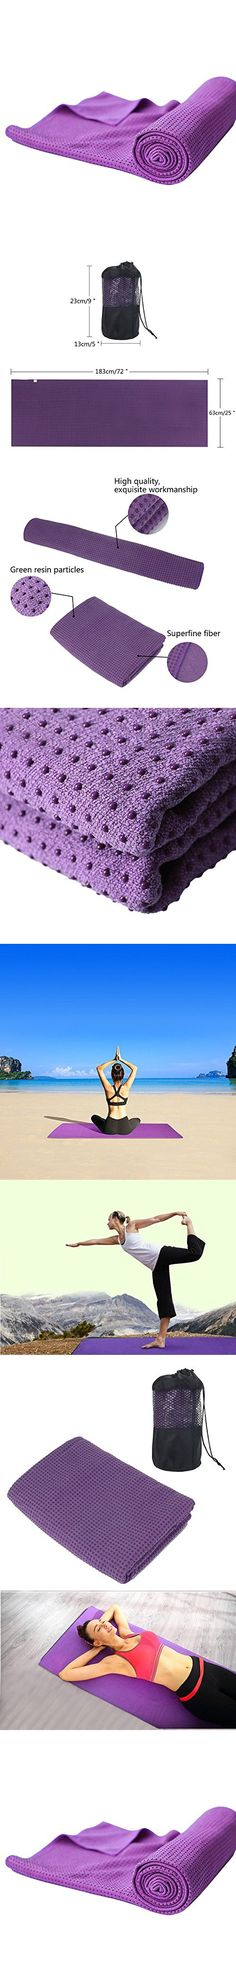 Umiwe Non Slip Hot Yoga Mat Towel with Silicone Beads - Ultra Absorbent Microfiber & Extra Firm Grip - for Hot Yoga Pilates Workout Exercise, Purple